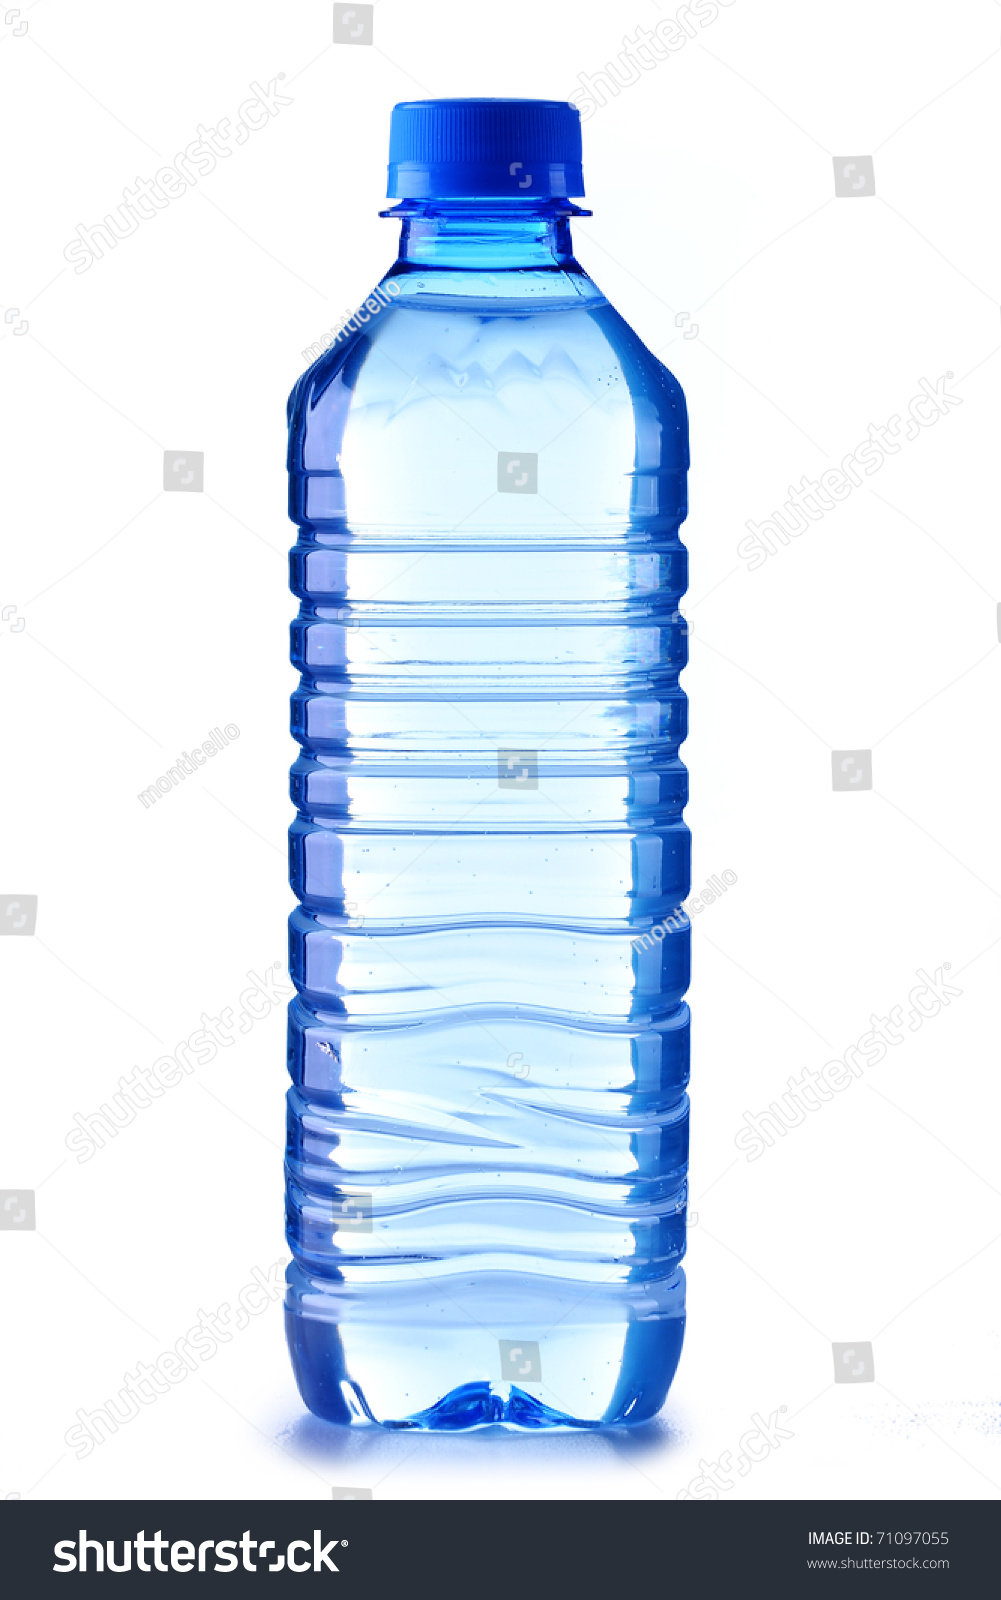 Small polycarbonate plastic bottle mineral water stock for Plastic water bottle art